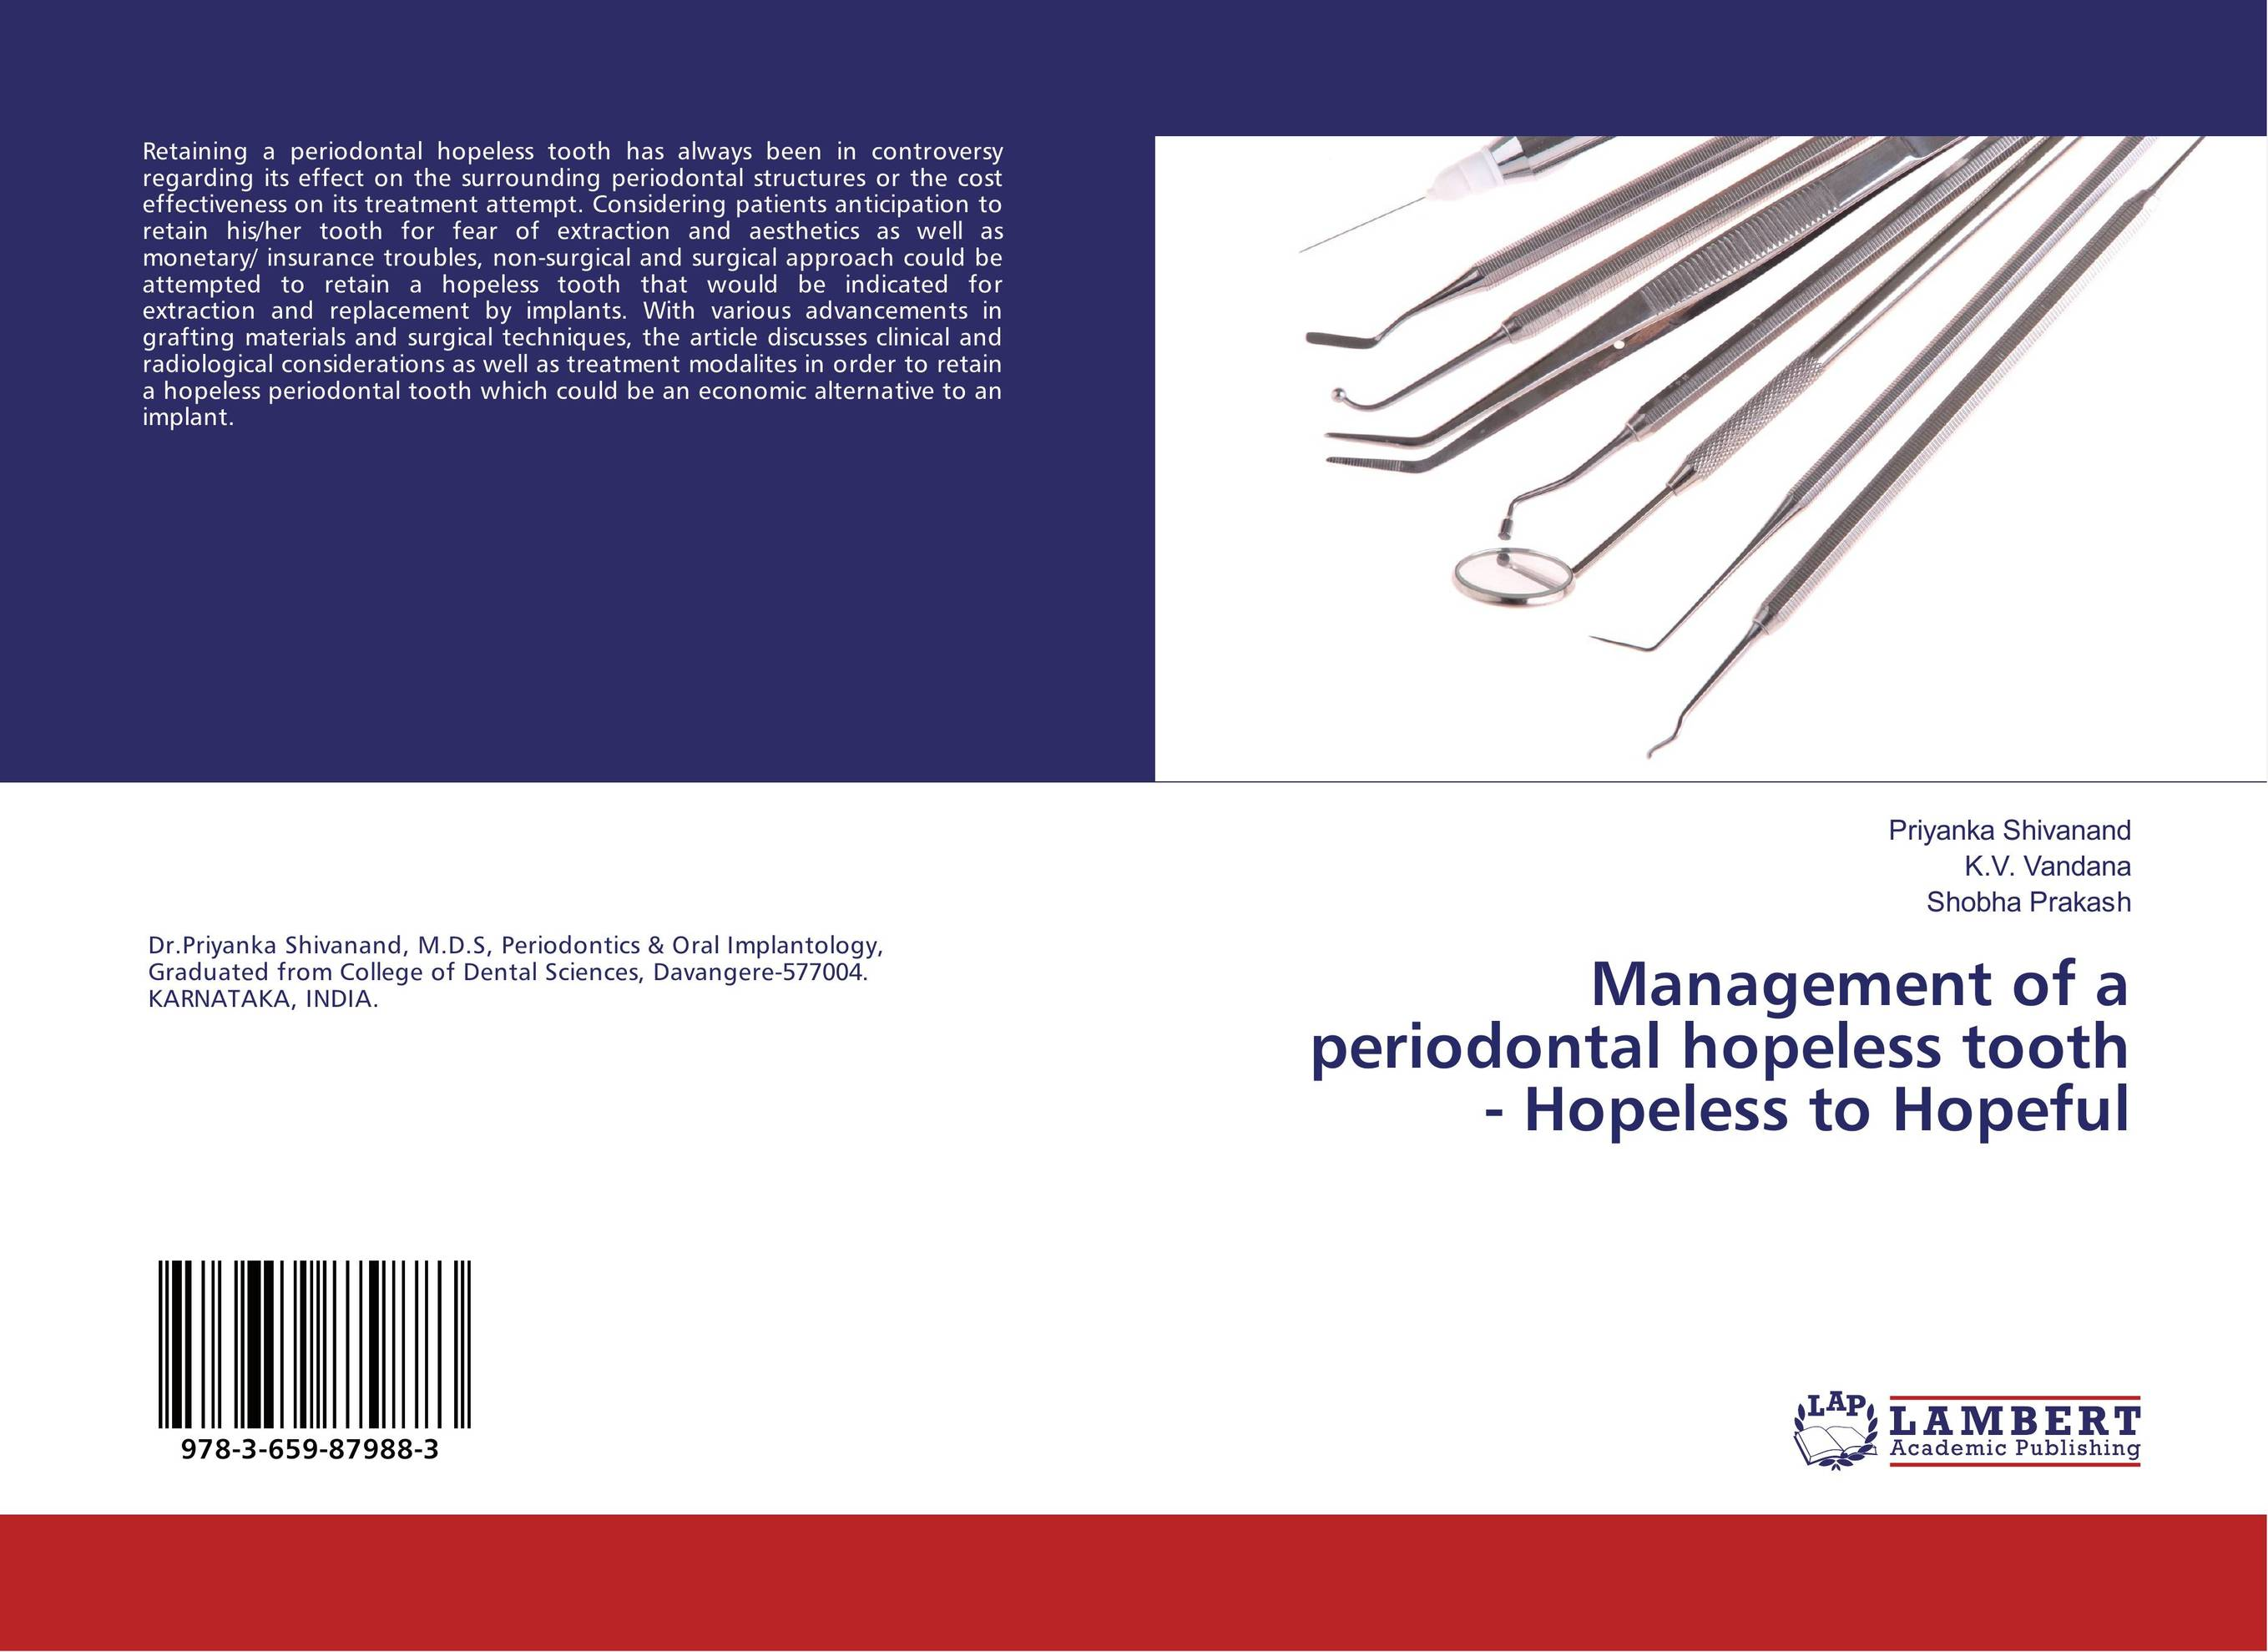 Management of a periodontal hopeless tooth - Hopeless to Hopeful non surgical periodontal therapy